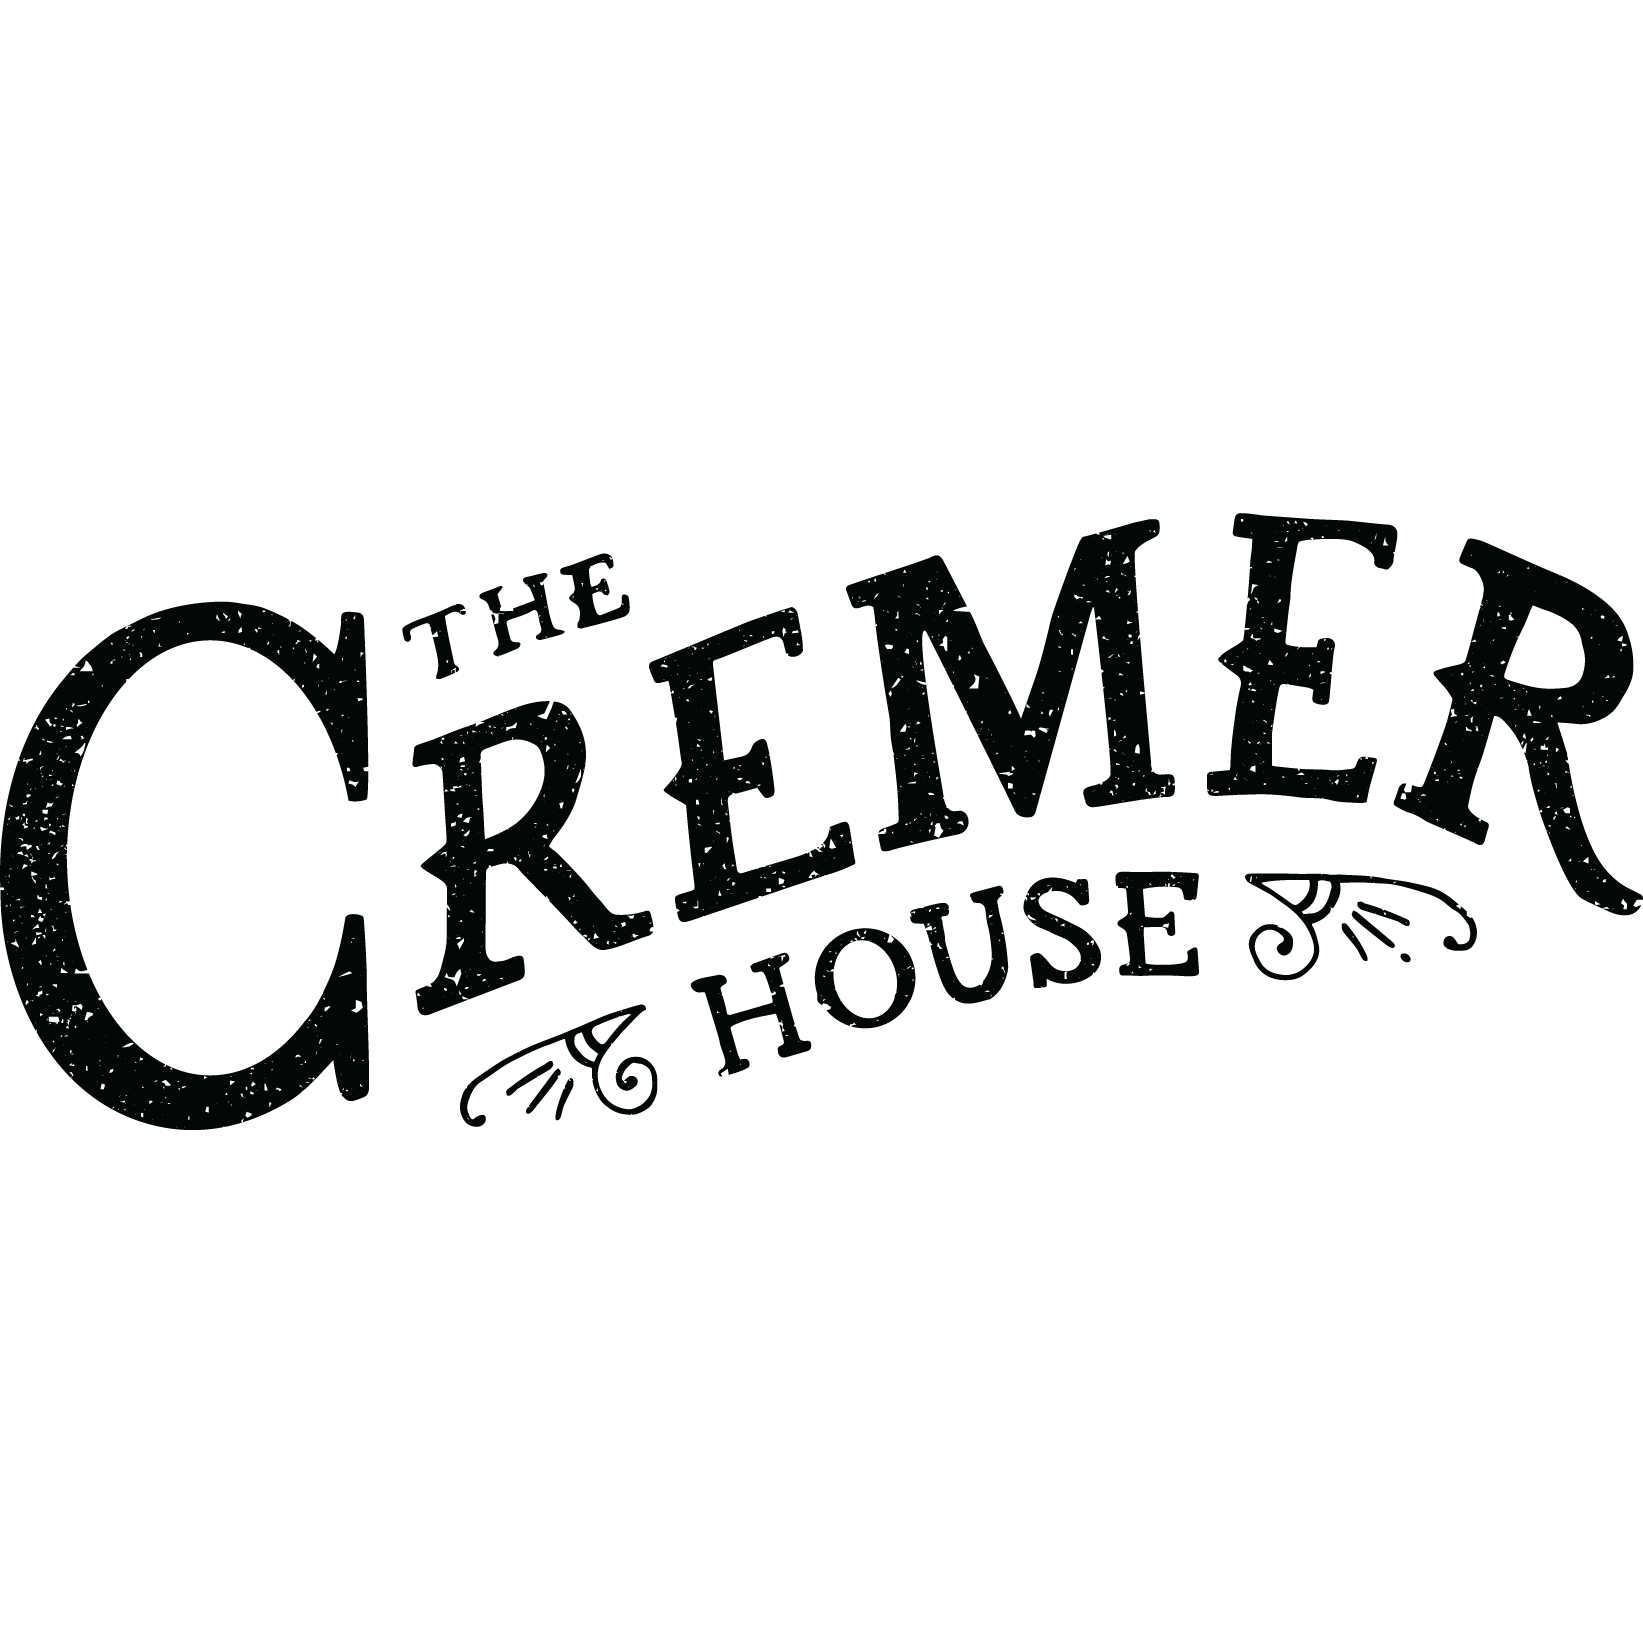 The Cremer House - Meal service(s): Lunch, Dinner